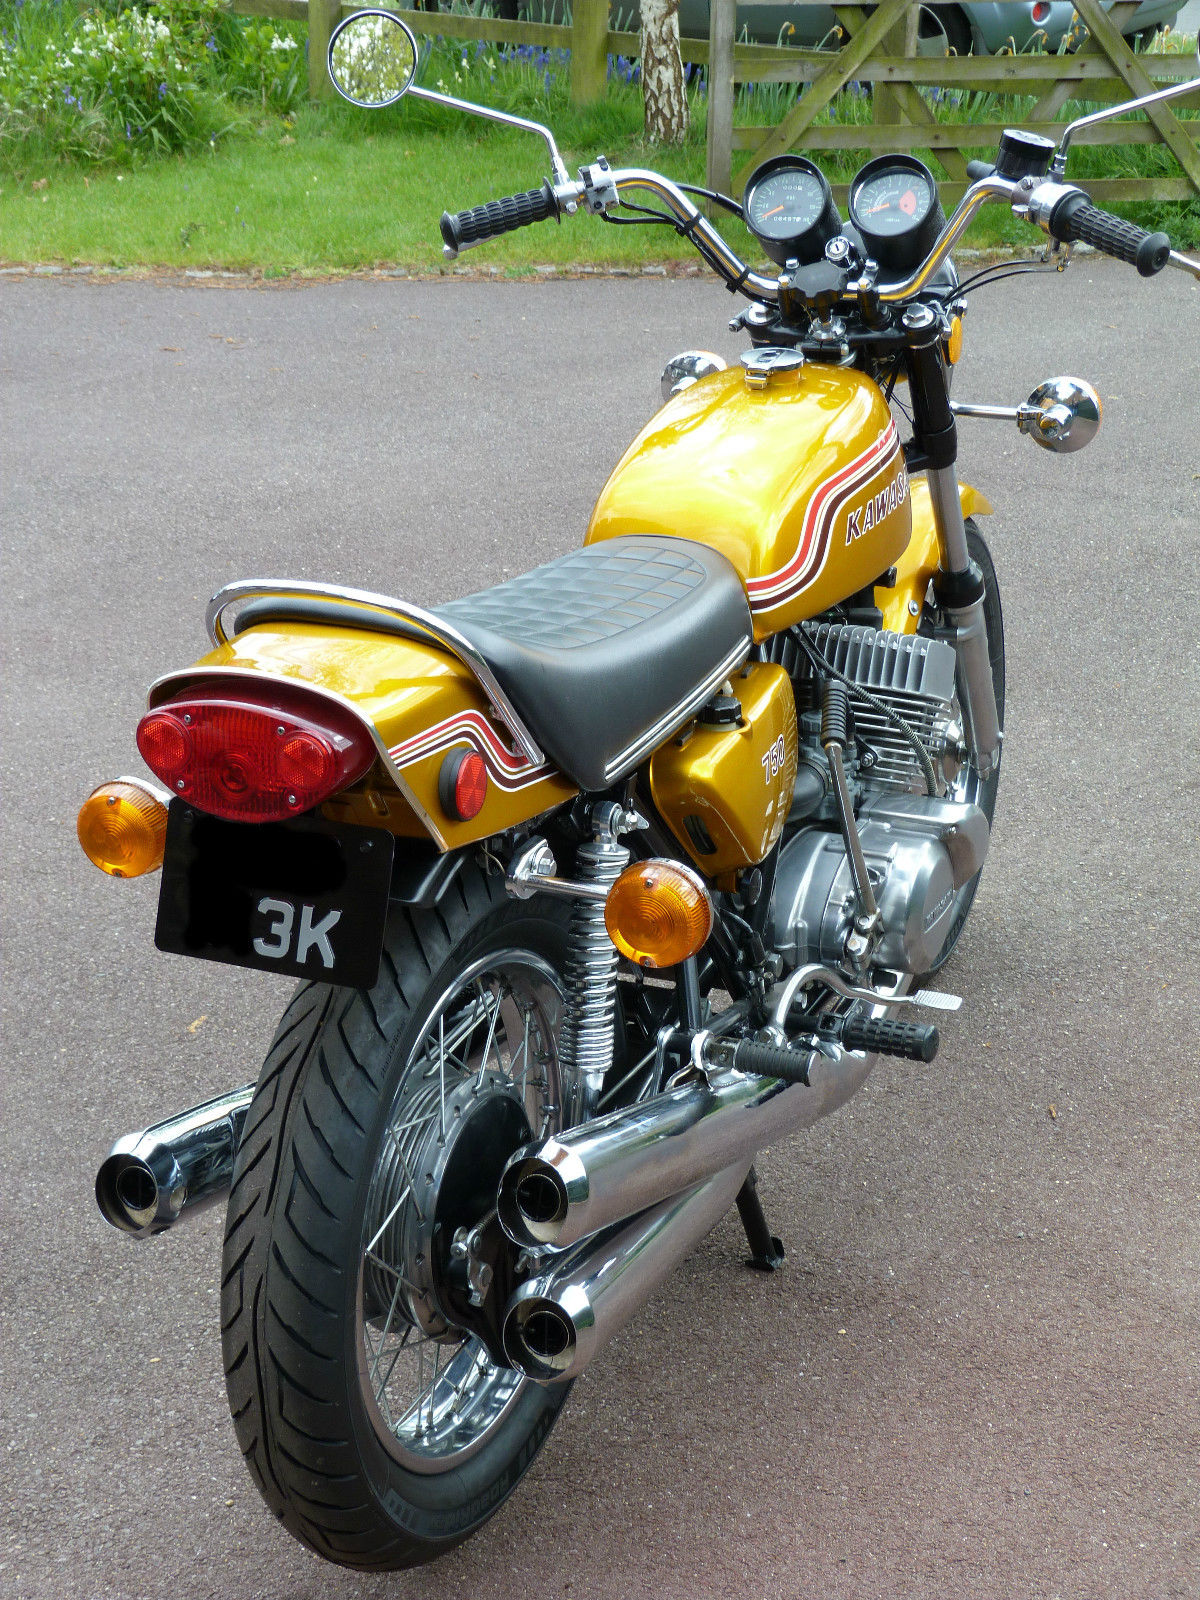 Kawasaki H2 750 - 1972 - Rear View, Tail Piece, Number Plate, Rear Wheel, Shock Absorbers and Indicators.